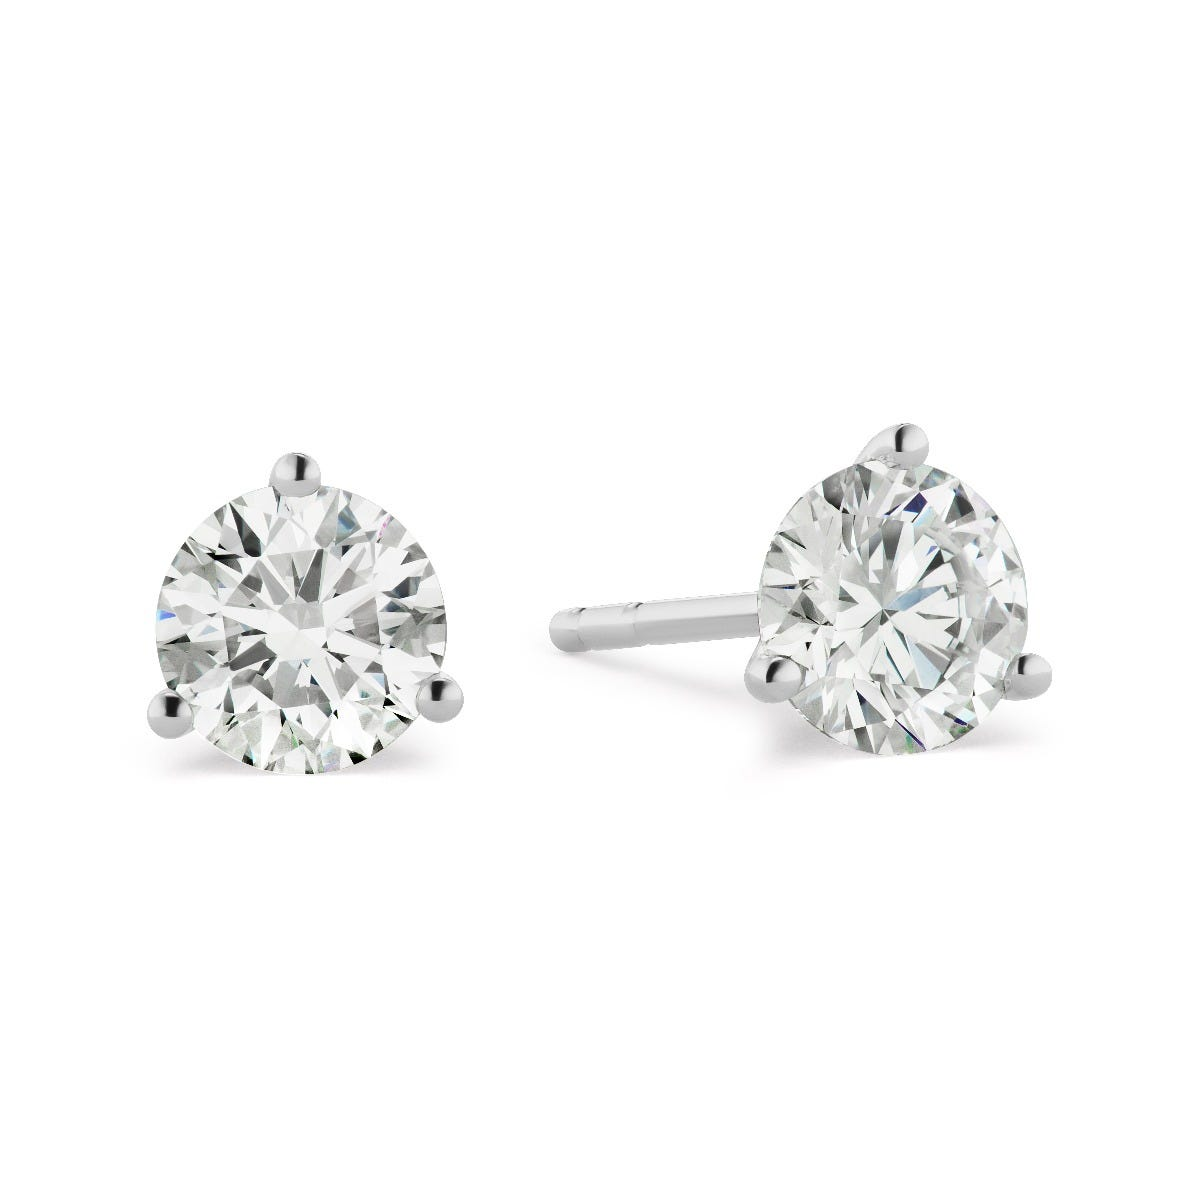 Lab Grown 2 1/2ct. Diamond 3-Prong Stud Earrings in 14k White Gold